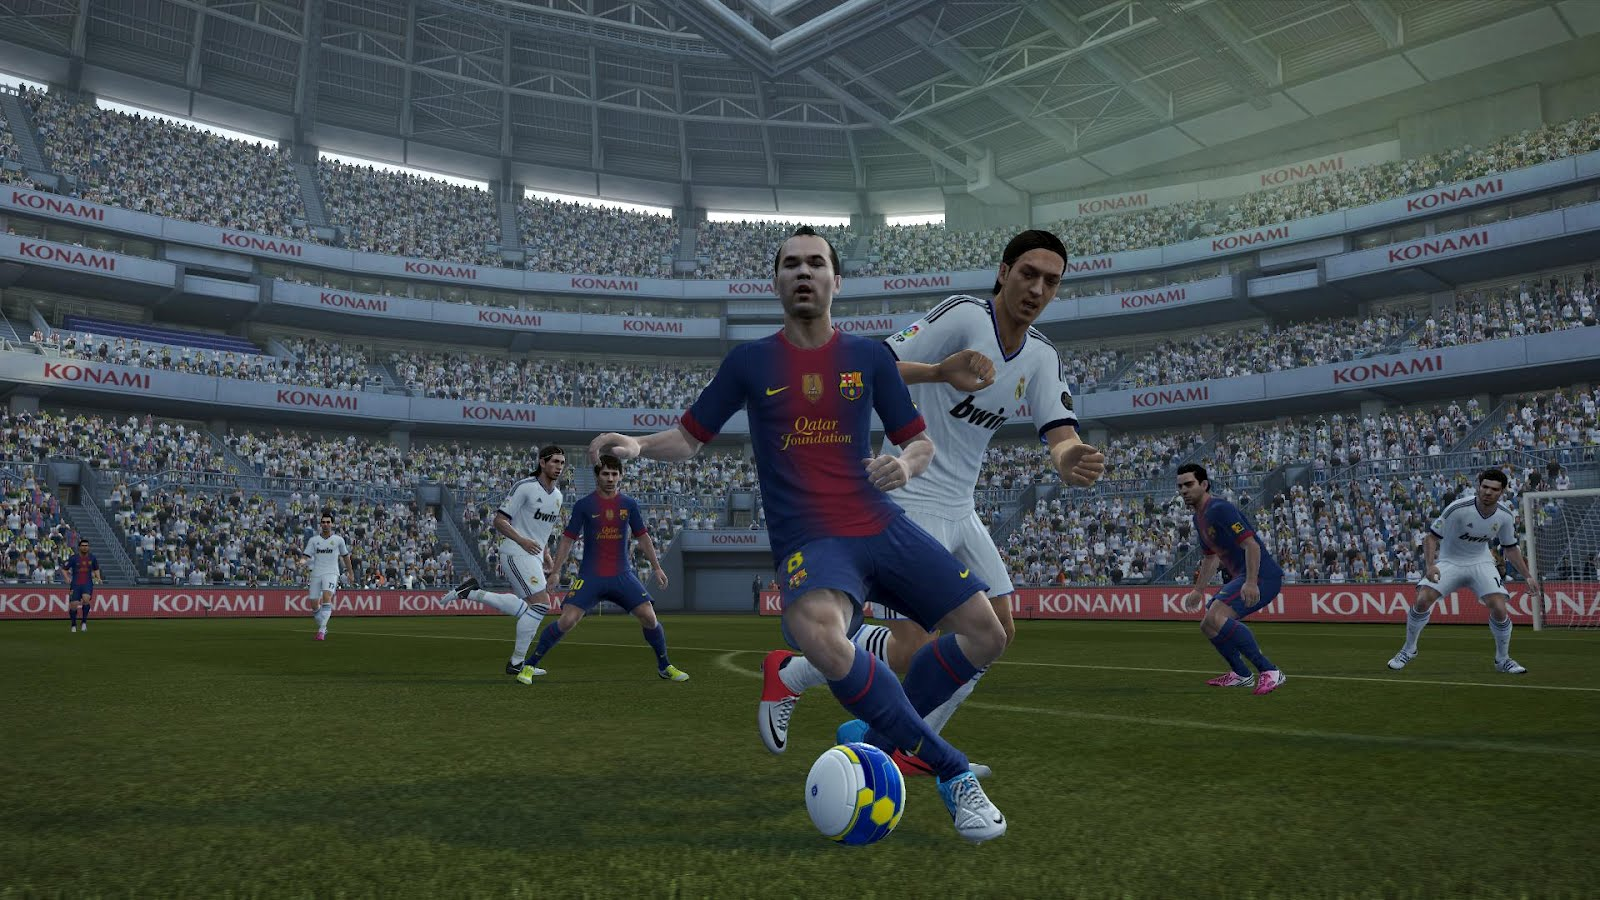 Pesedit team released PESEDIT 2013 Demo Patch v1.0 for NEW PES 2013